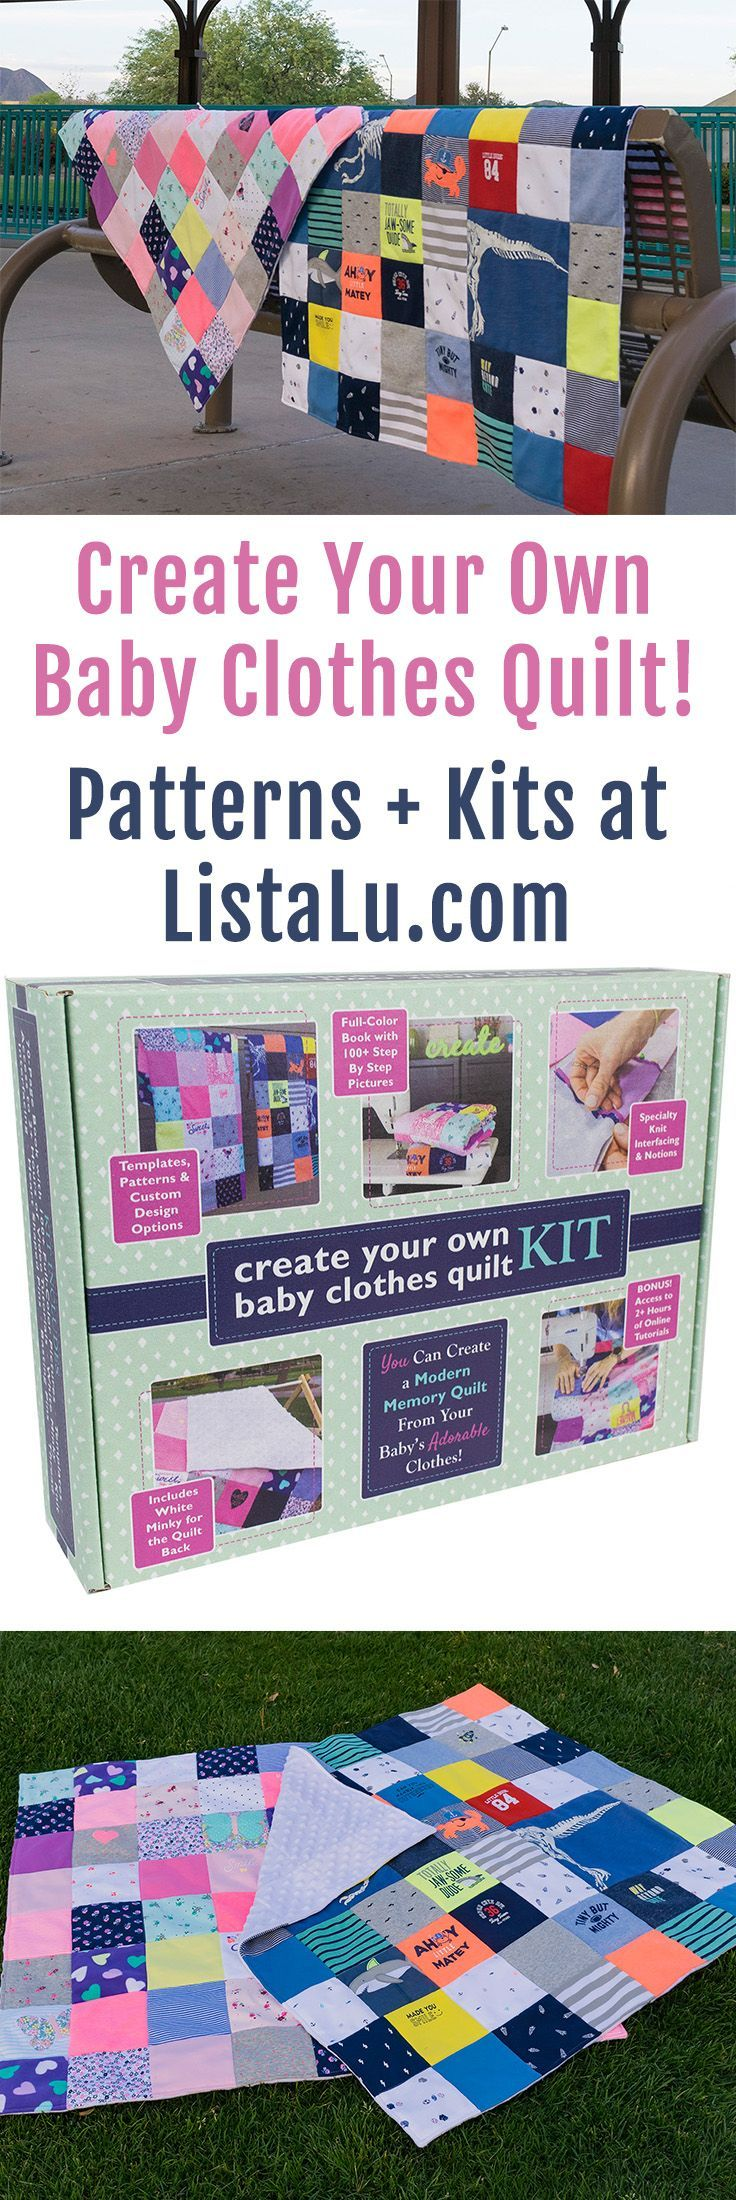 Baby Clothes Quilt Kits to DIY your own onesie baby & toddler blanket! www.listalu.com